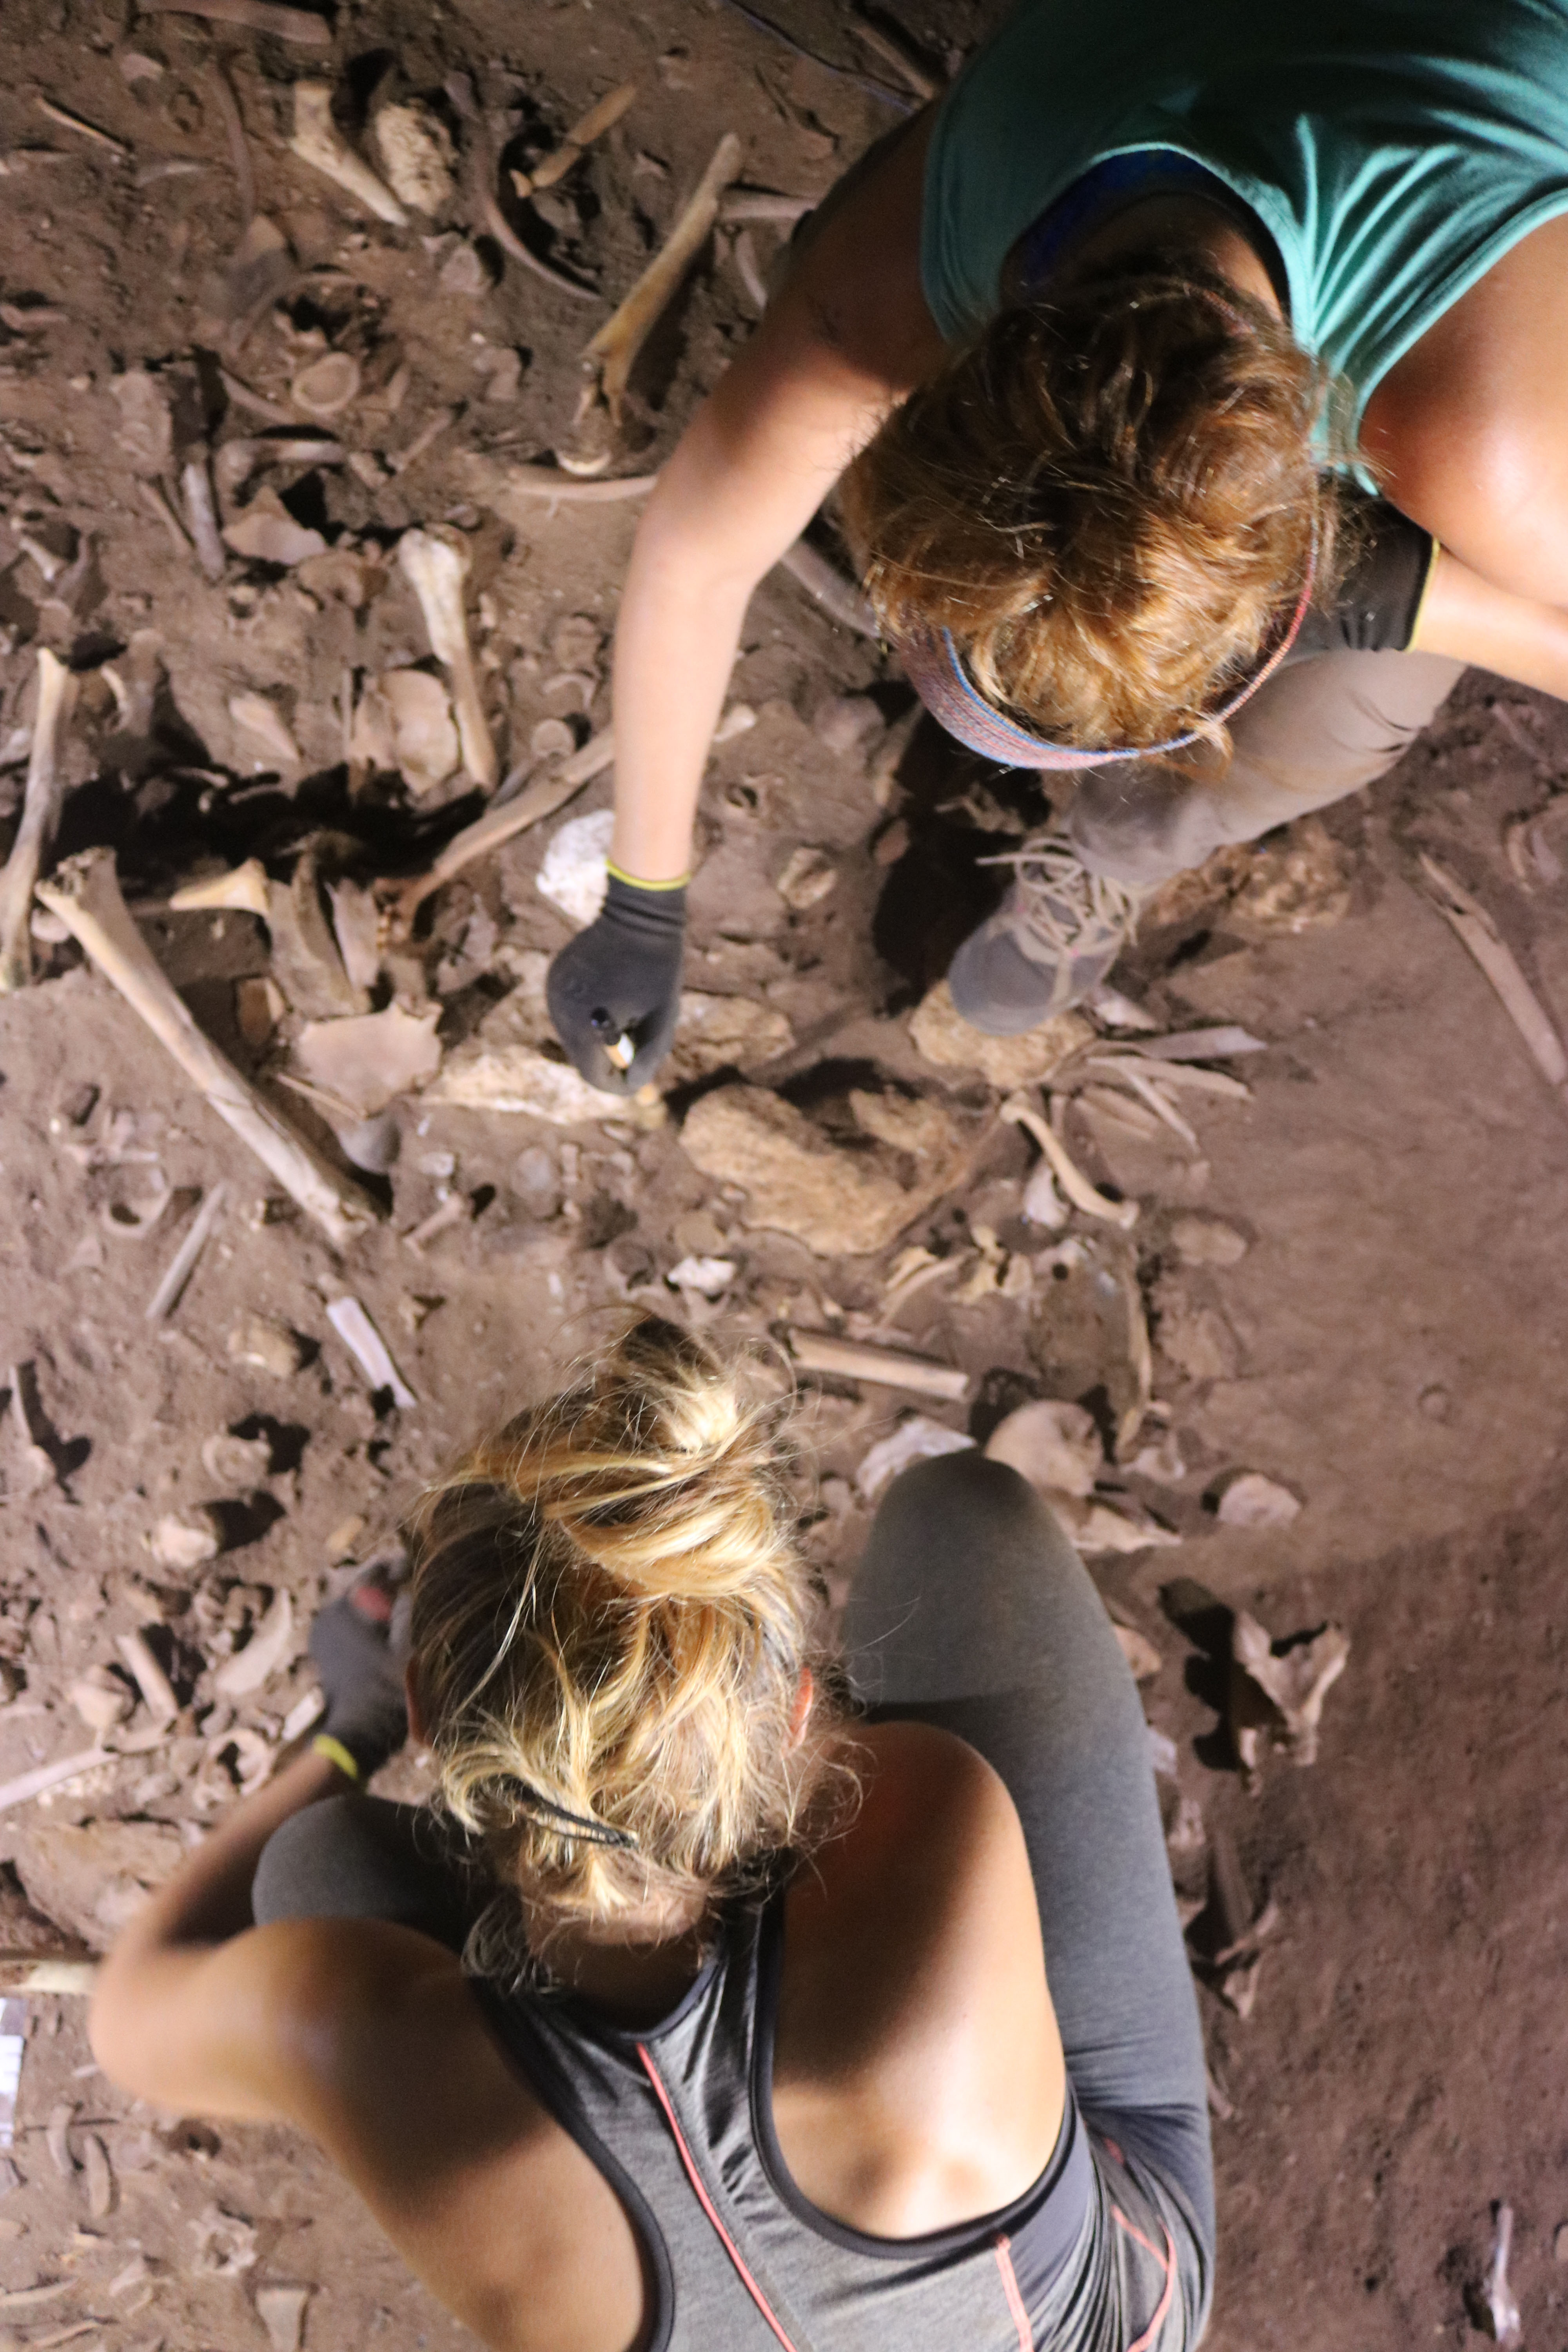 The archaeologists Dr. Eva Alarcón y Dr. Alba Torres working at the excavation site in Biniadris Cave